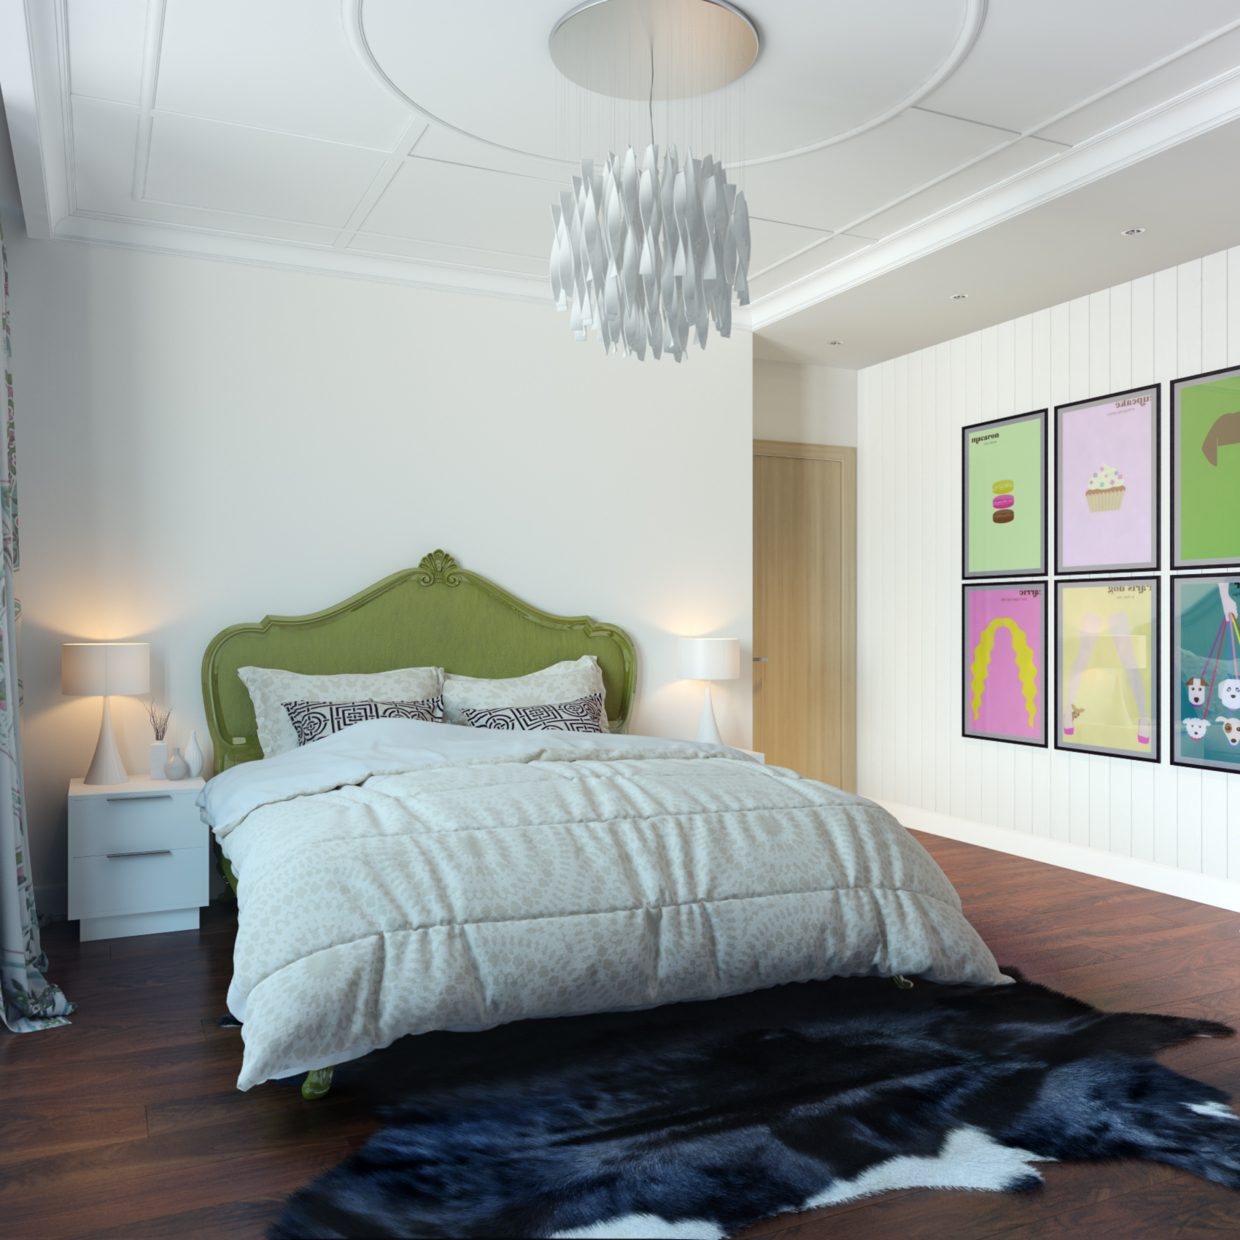 Pop art bedroom wall decoration